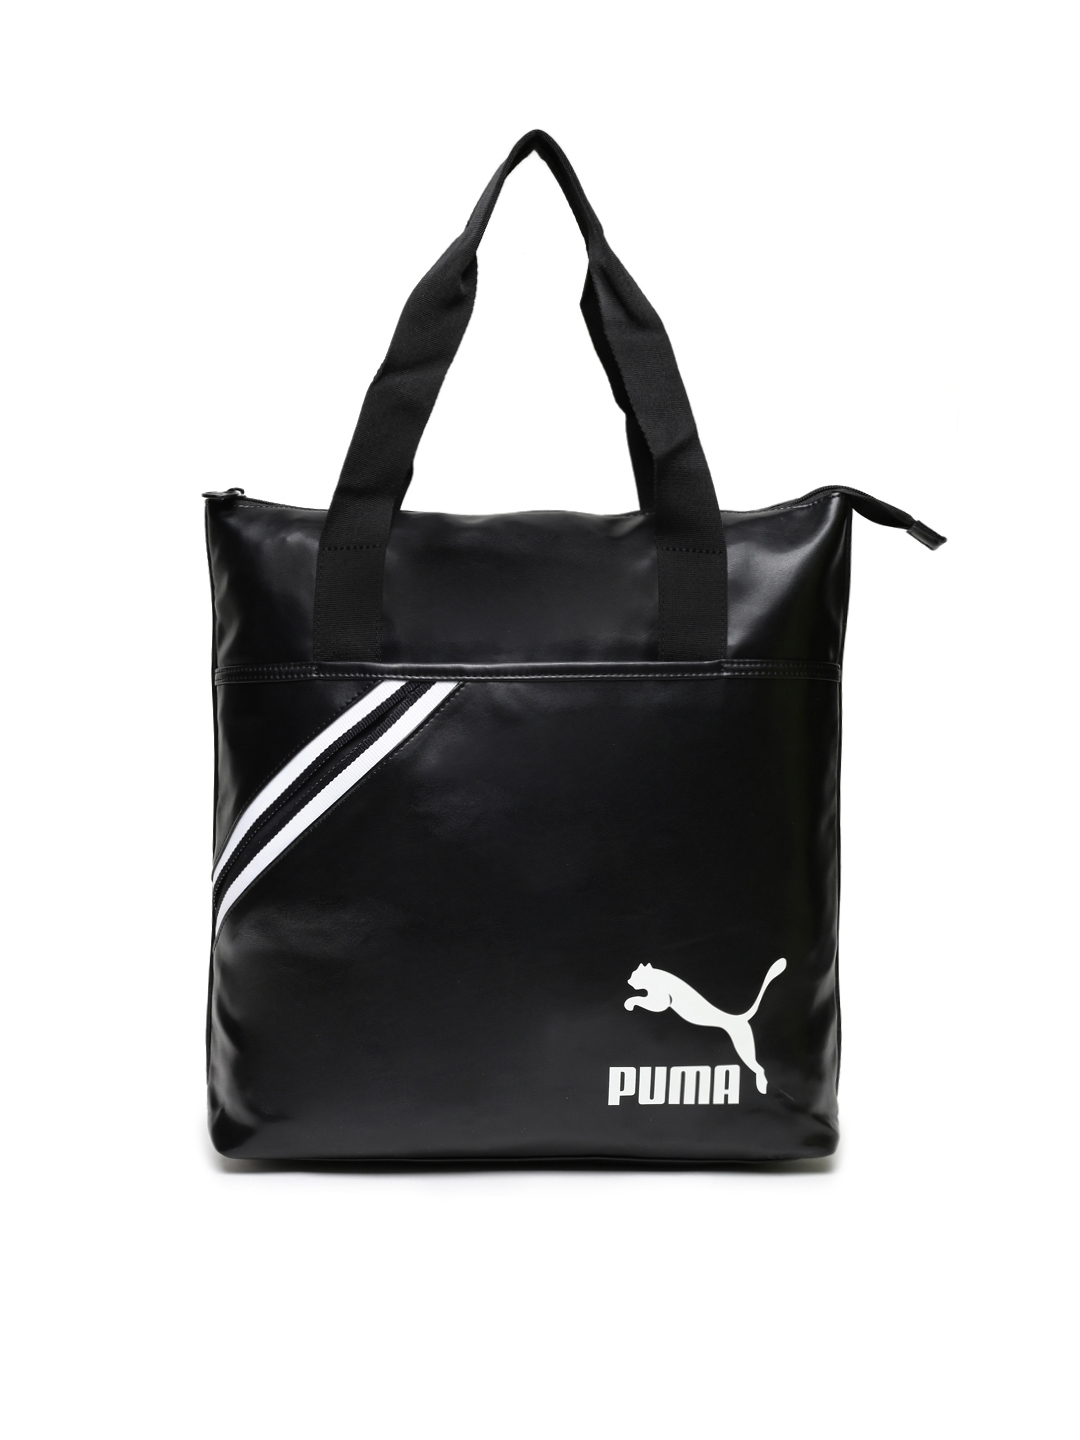 f9423e45ac23 Buy Puma Black Printed Tote Bag - Handbags for Women 7980781